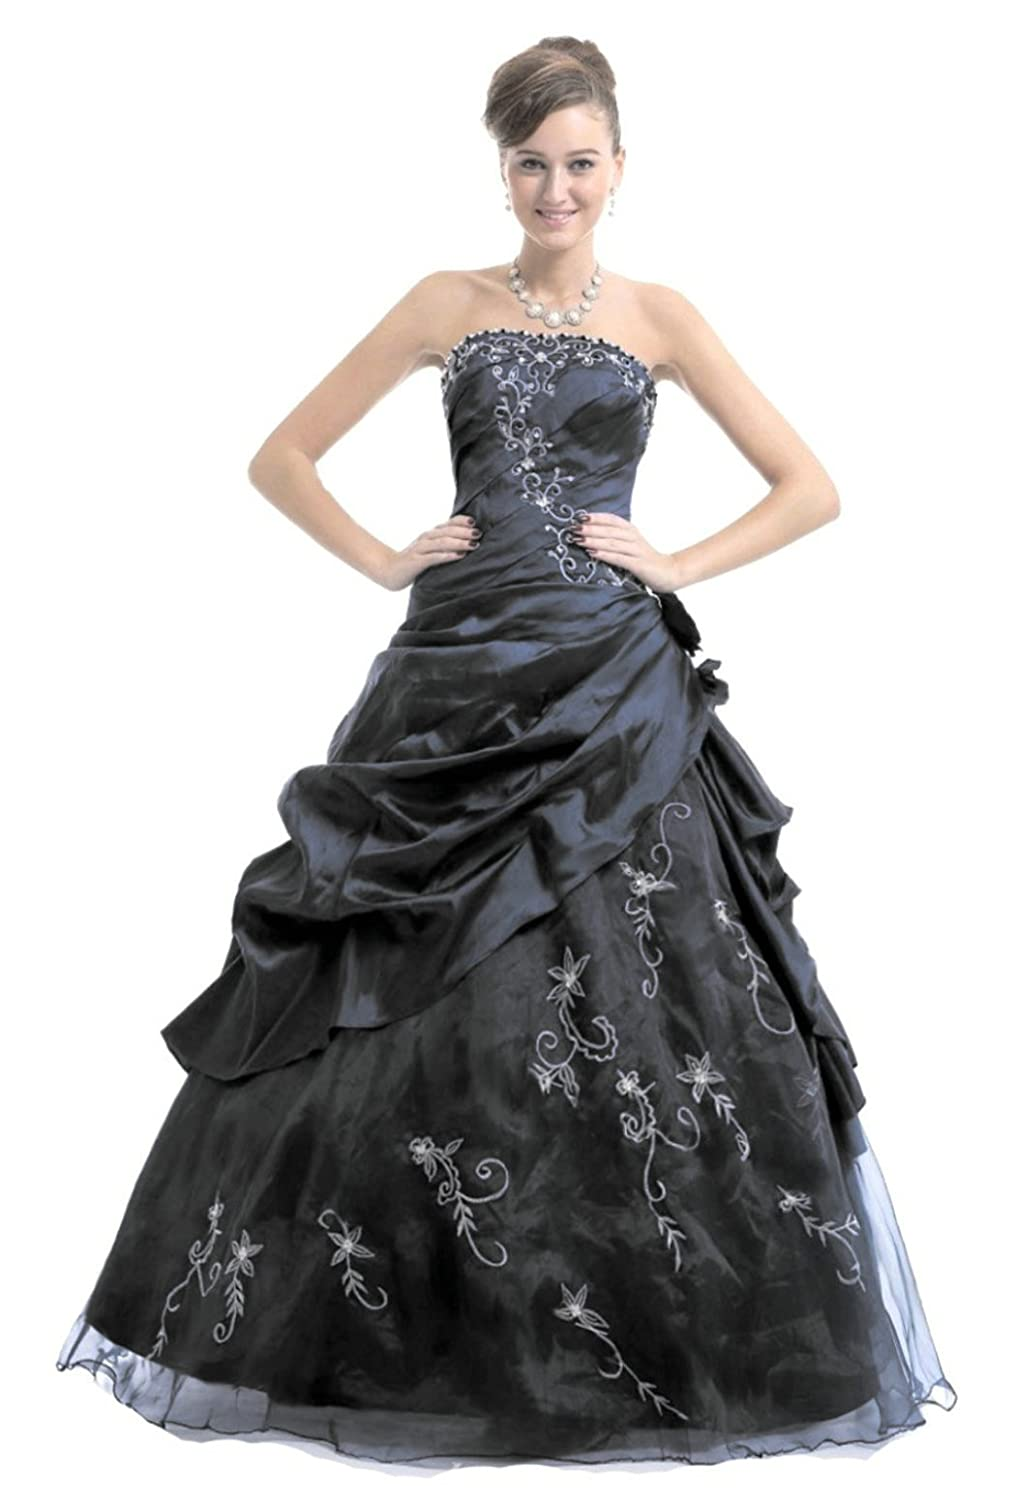 e61bb33903409 Amazon.com  RohmBridal Women s Strapless Embroidery Princess Evening Ball  Gown  Clothing